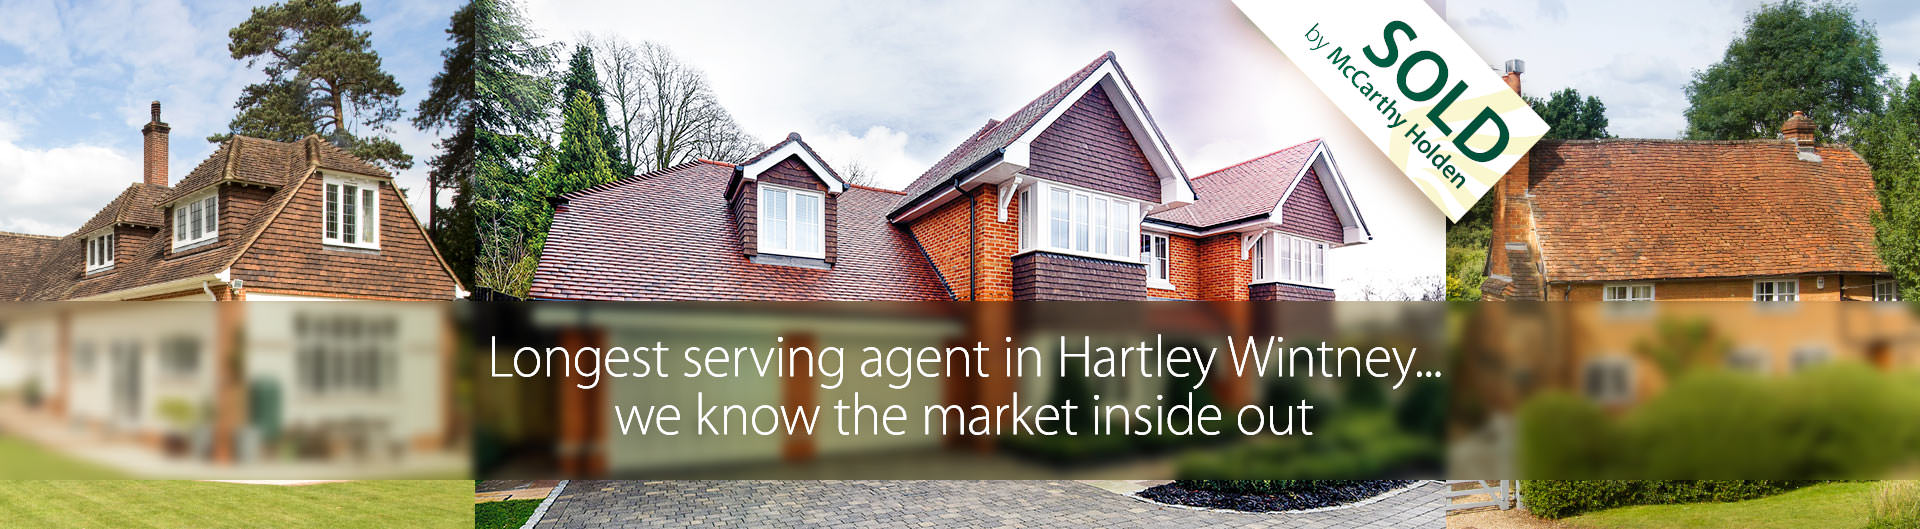 Hartley Wintney estate agents - houses for sale in Hartley Wintney